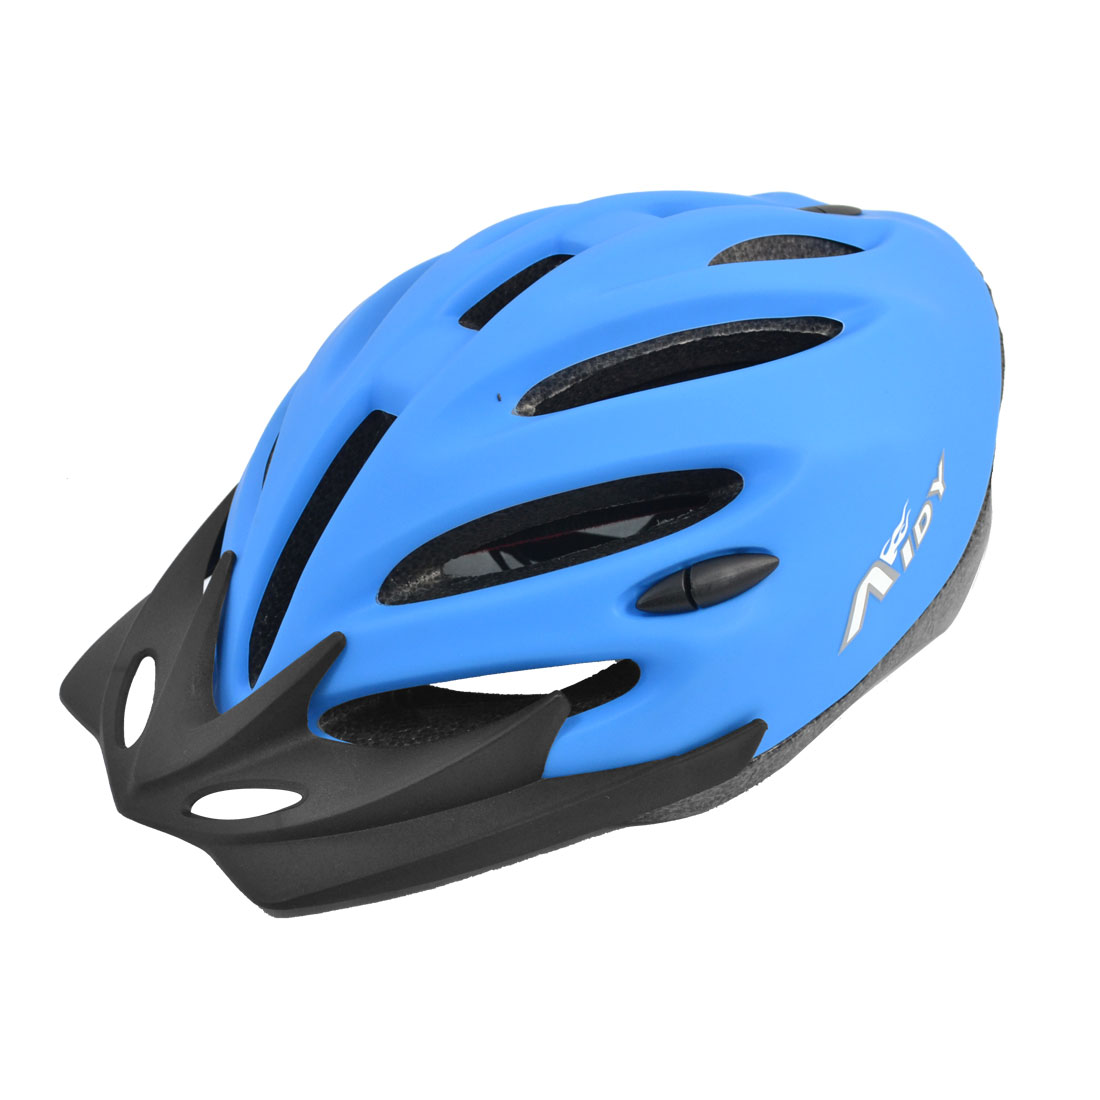 Adult Blue Charactor Pattern Pad Adjustable Head Strap PVC 58-63cm Outdoor Safety Bicycle Bike Skateboard Helmet